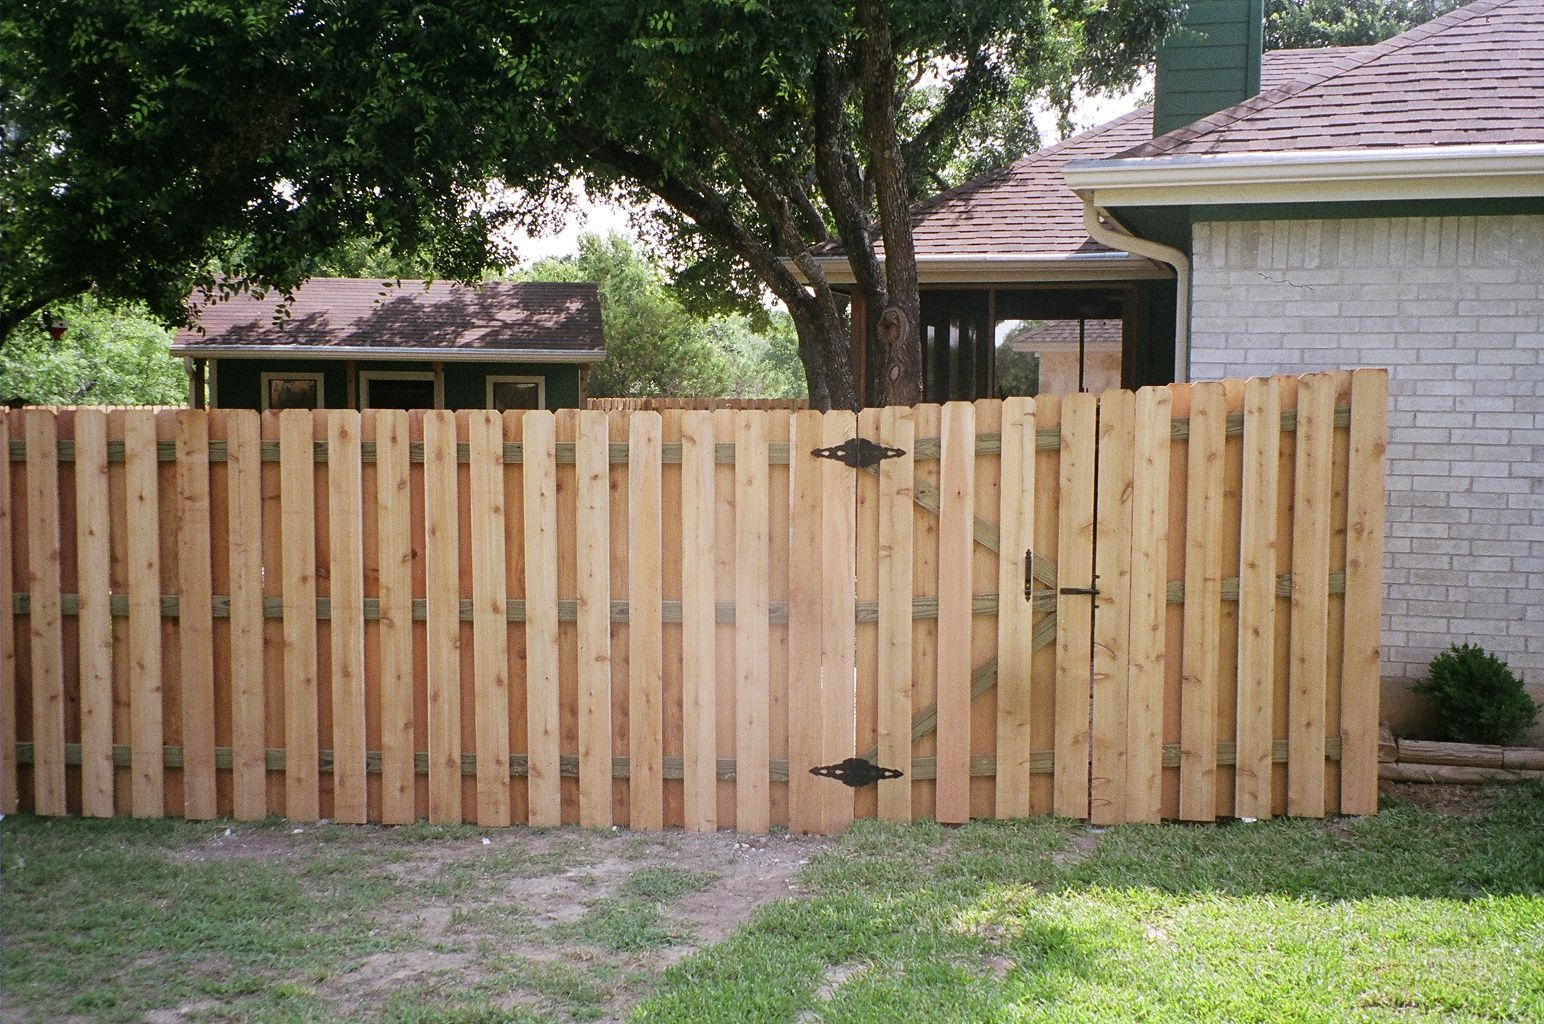 Staggered slats dog fence ideas pinterest fence gate design staggered slats dog fence ideas pinterest fence gate design wood fence gates and fence gate baanklon Gallery